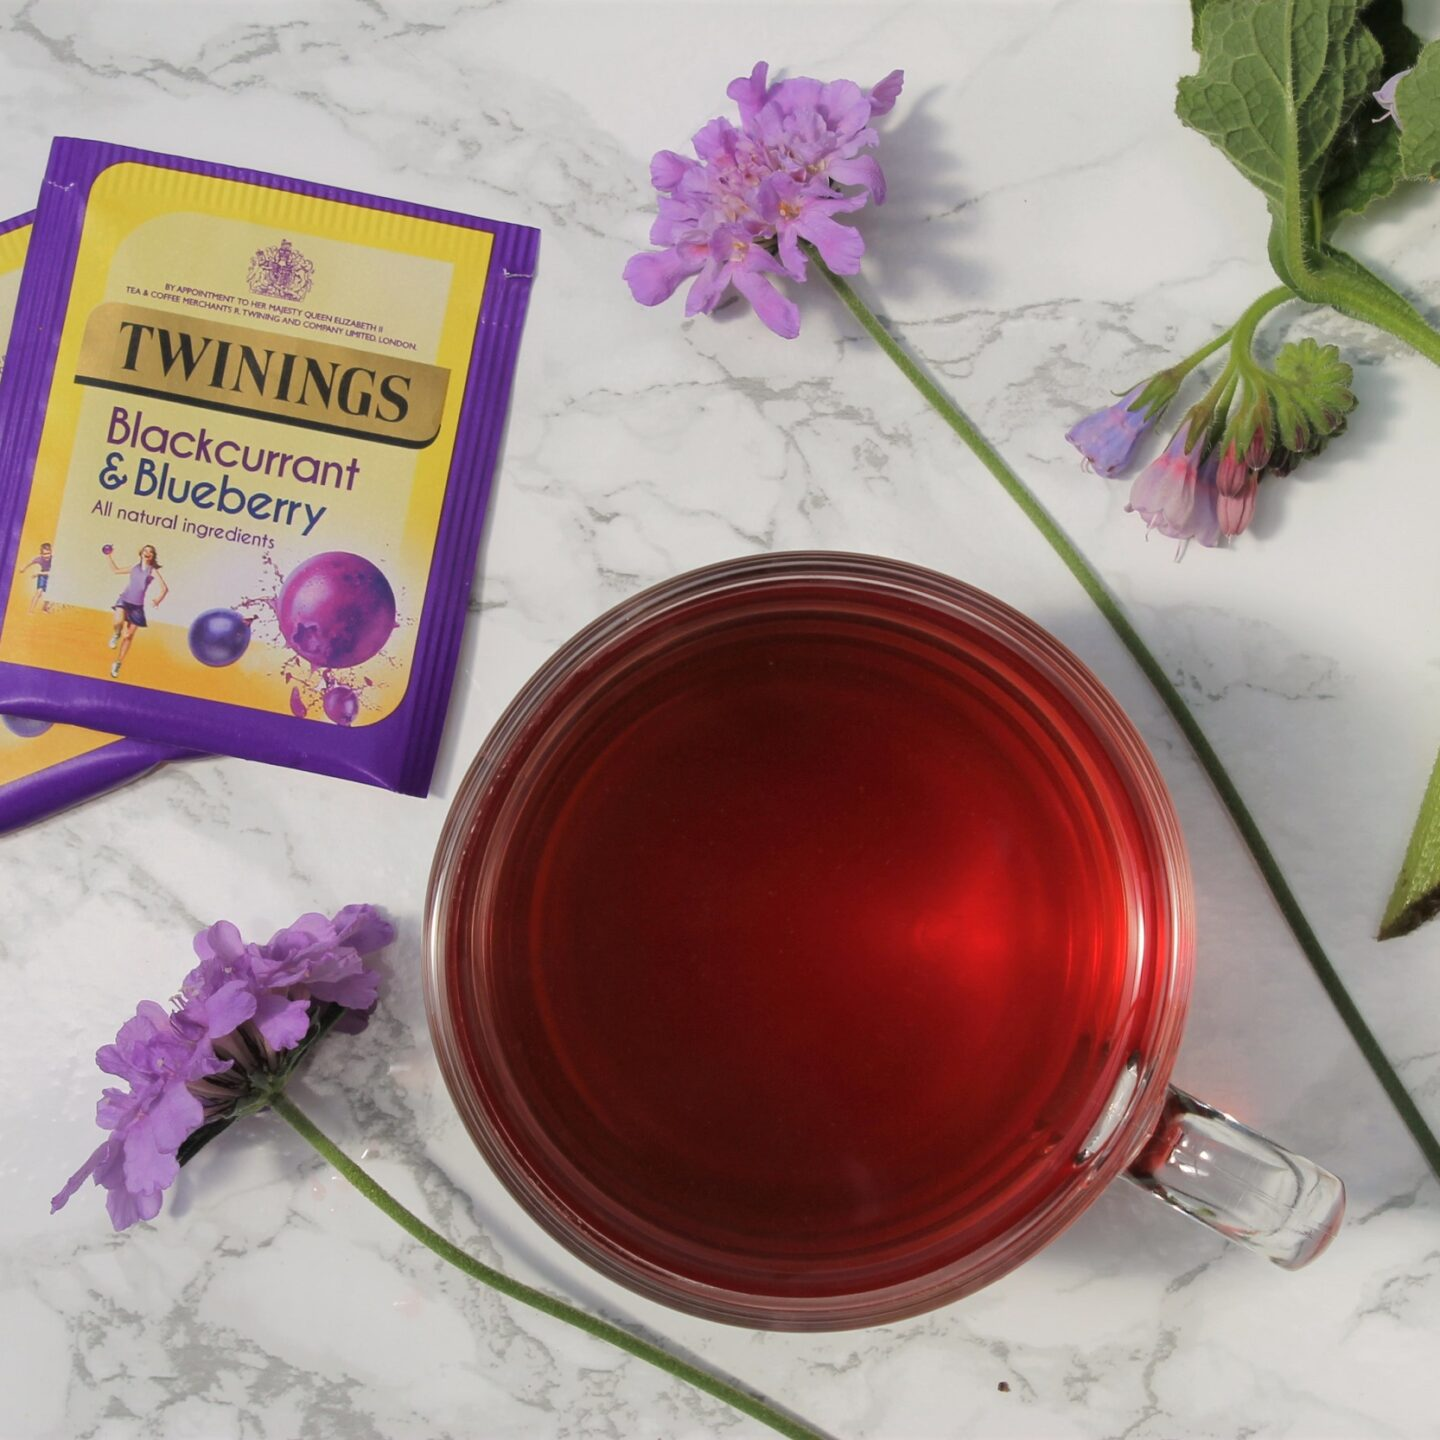 Twinings Blackcurrant & Blueberry Tea Review